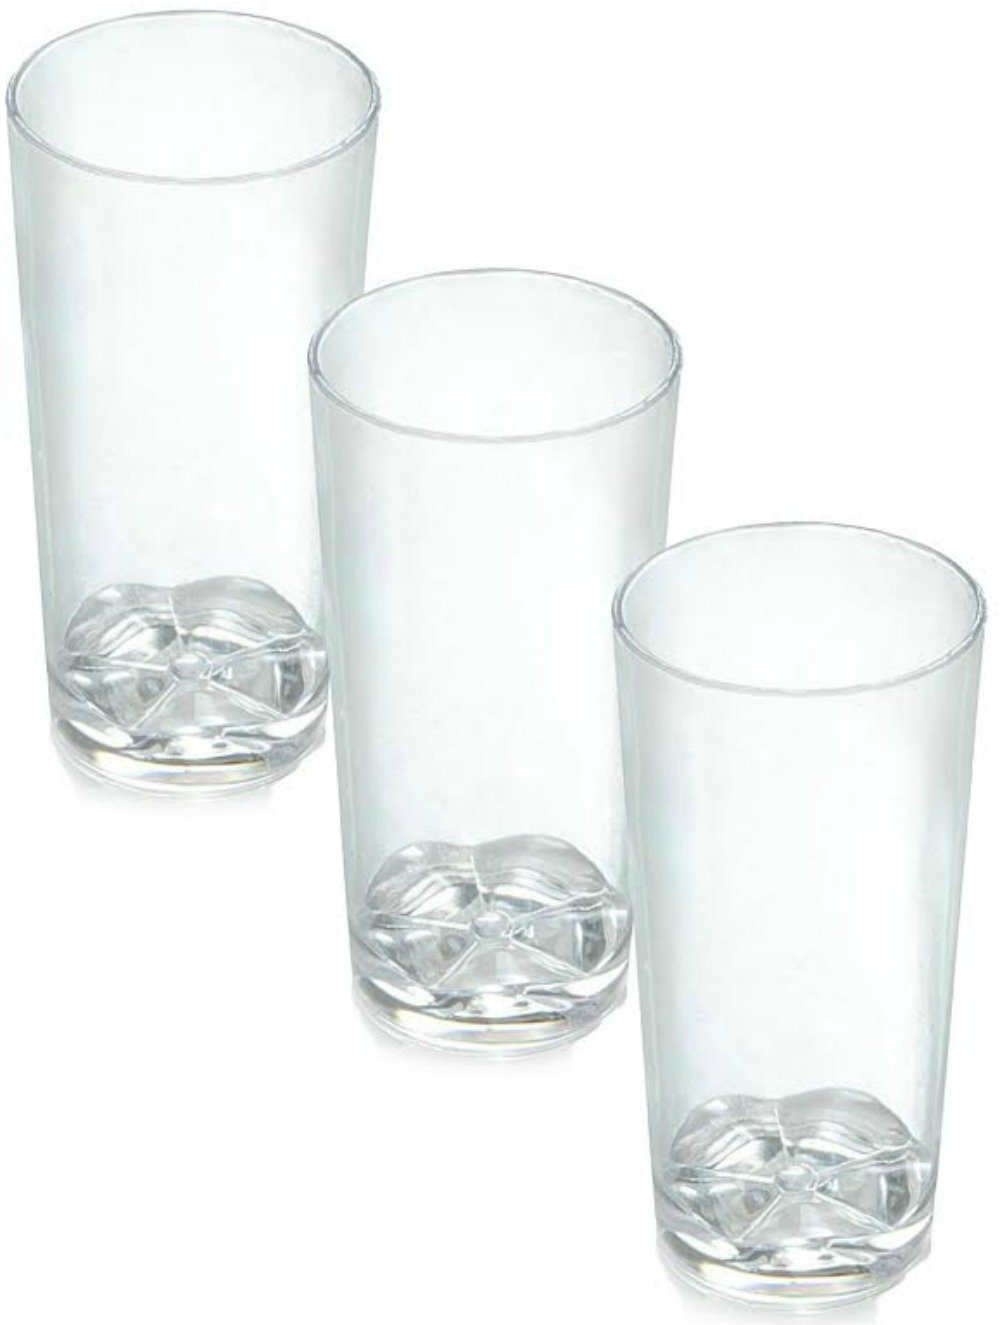 Zappy 52 Disposable Plastic Straight Wall Shooter Glasses 1.75 Oz Clear Tumblers - Tasting Sample Dessert Shooters Wine Beer Champagne Jello Cup Shot Glass Cups H&PC-59703